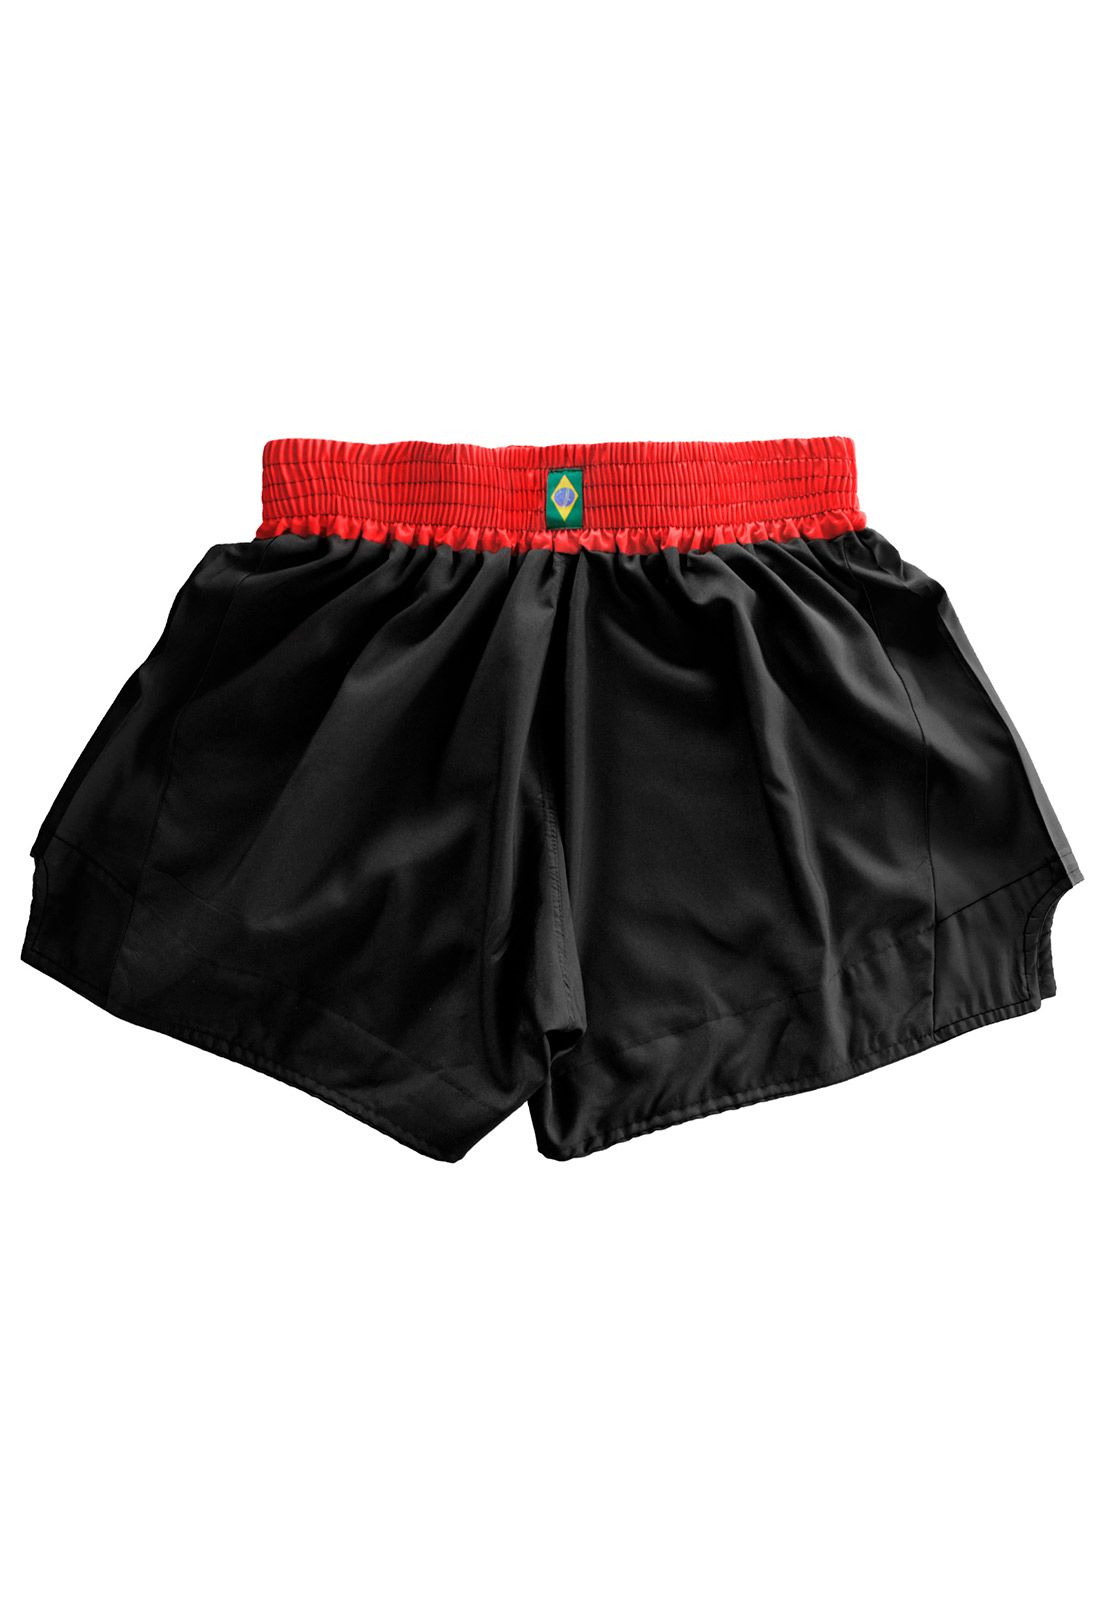 Short Muay Thai Kickboxing Caveira Tribal - Preto/Verm